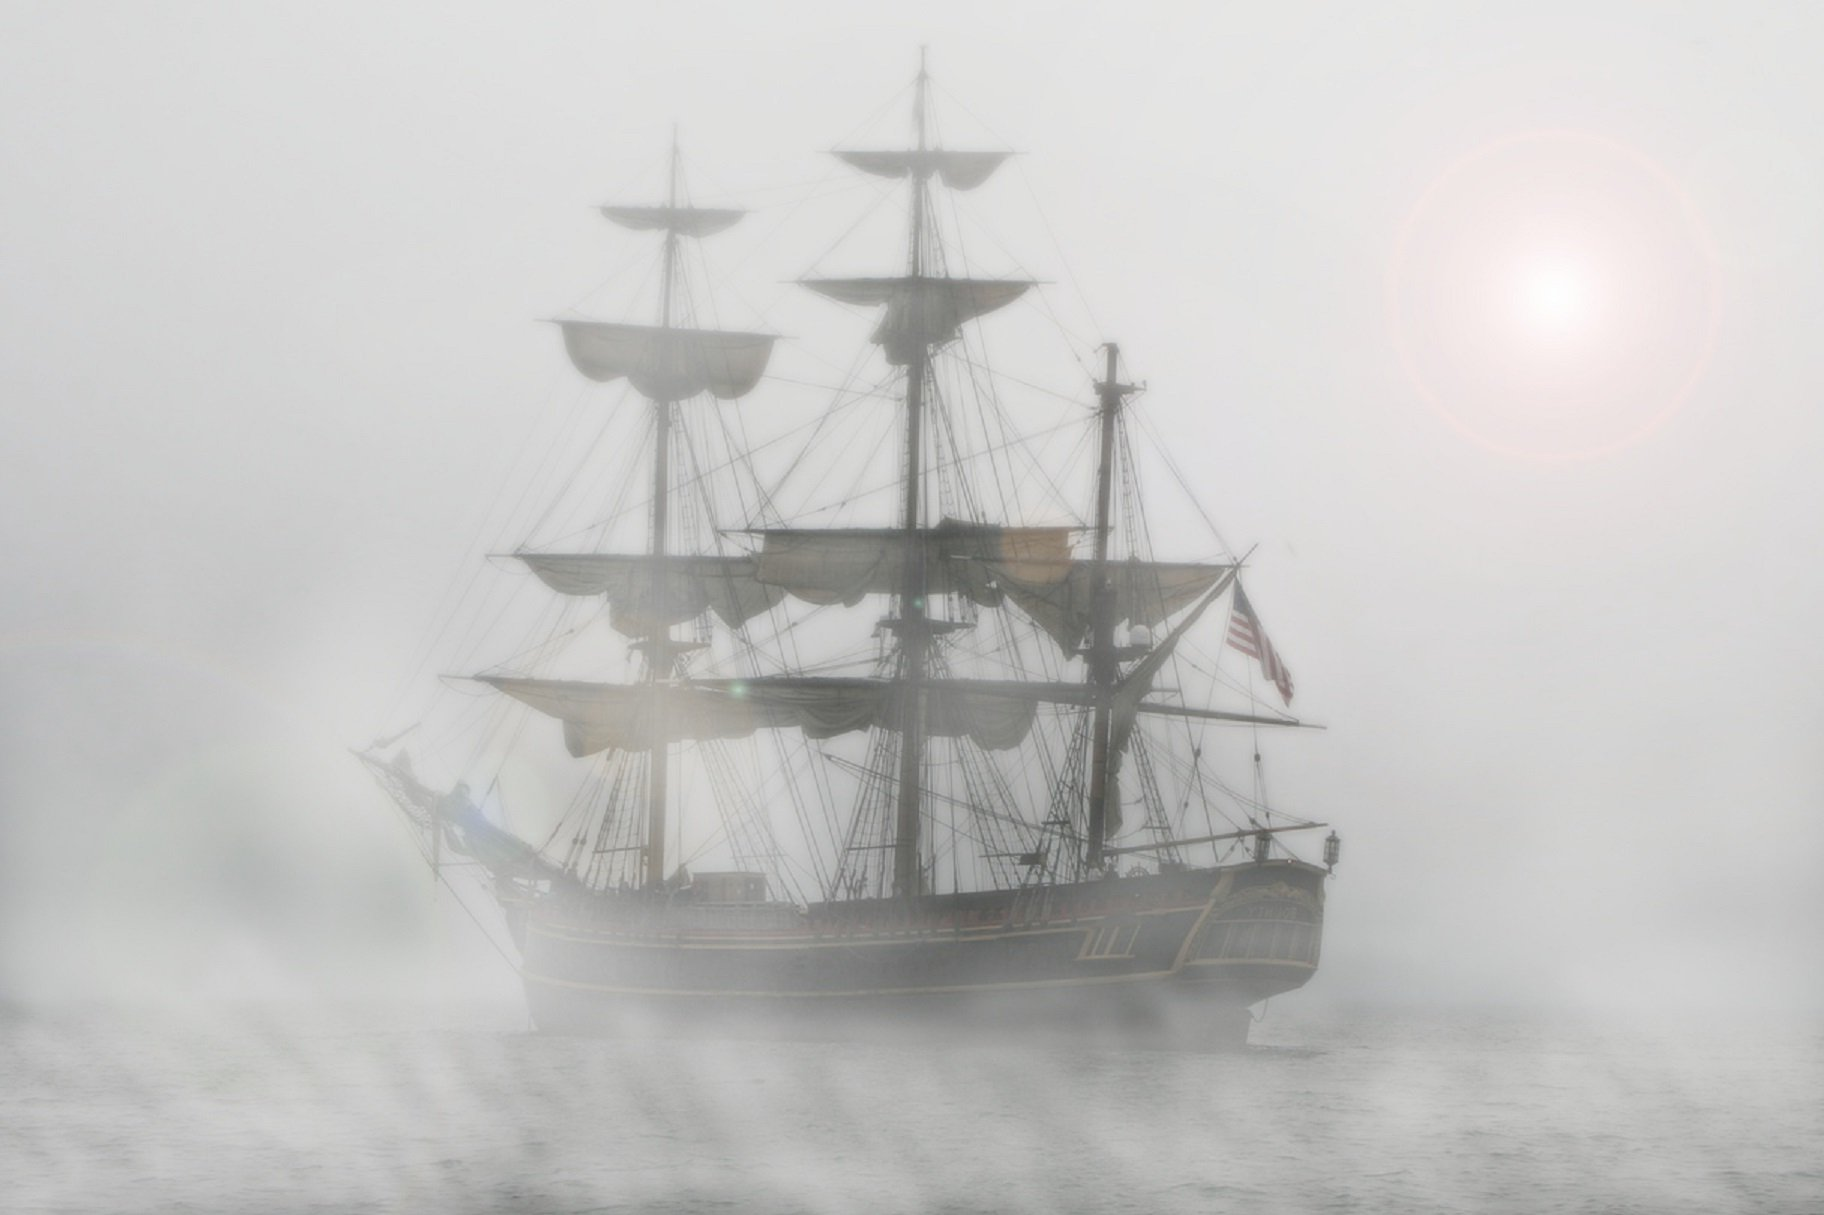 Free Picture Watercraft Ship Mist Sailboat Sail Boat